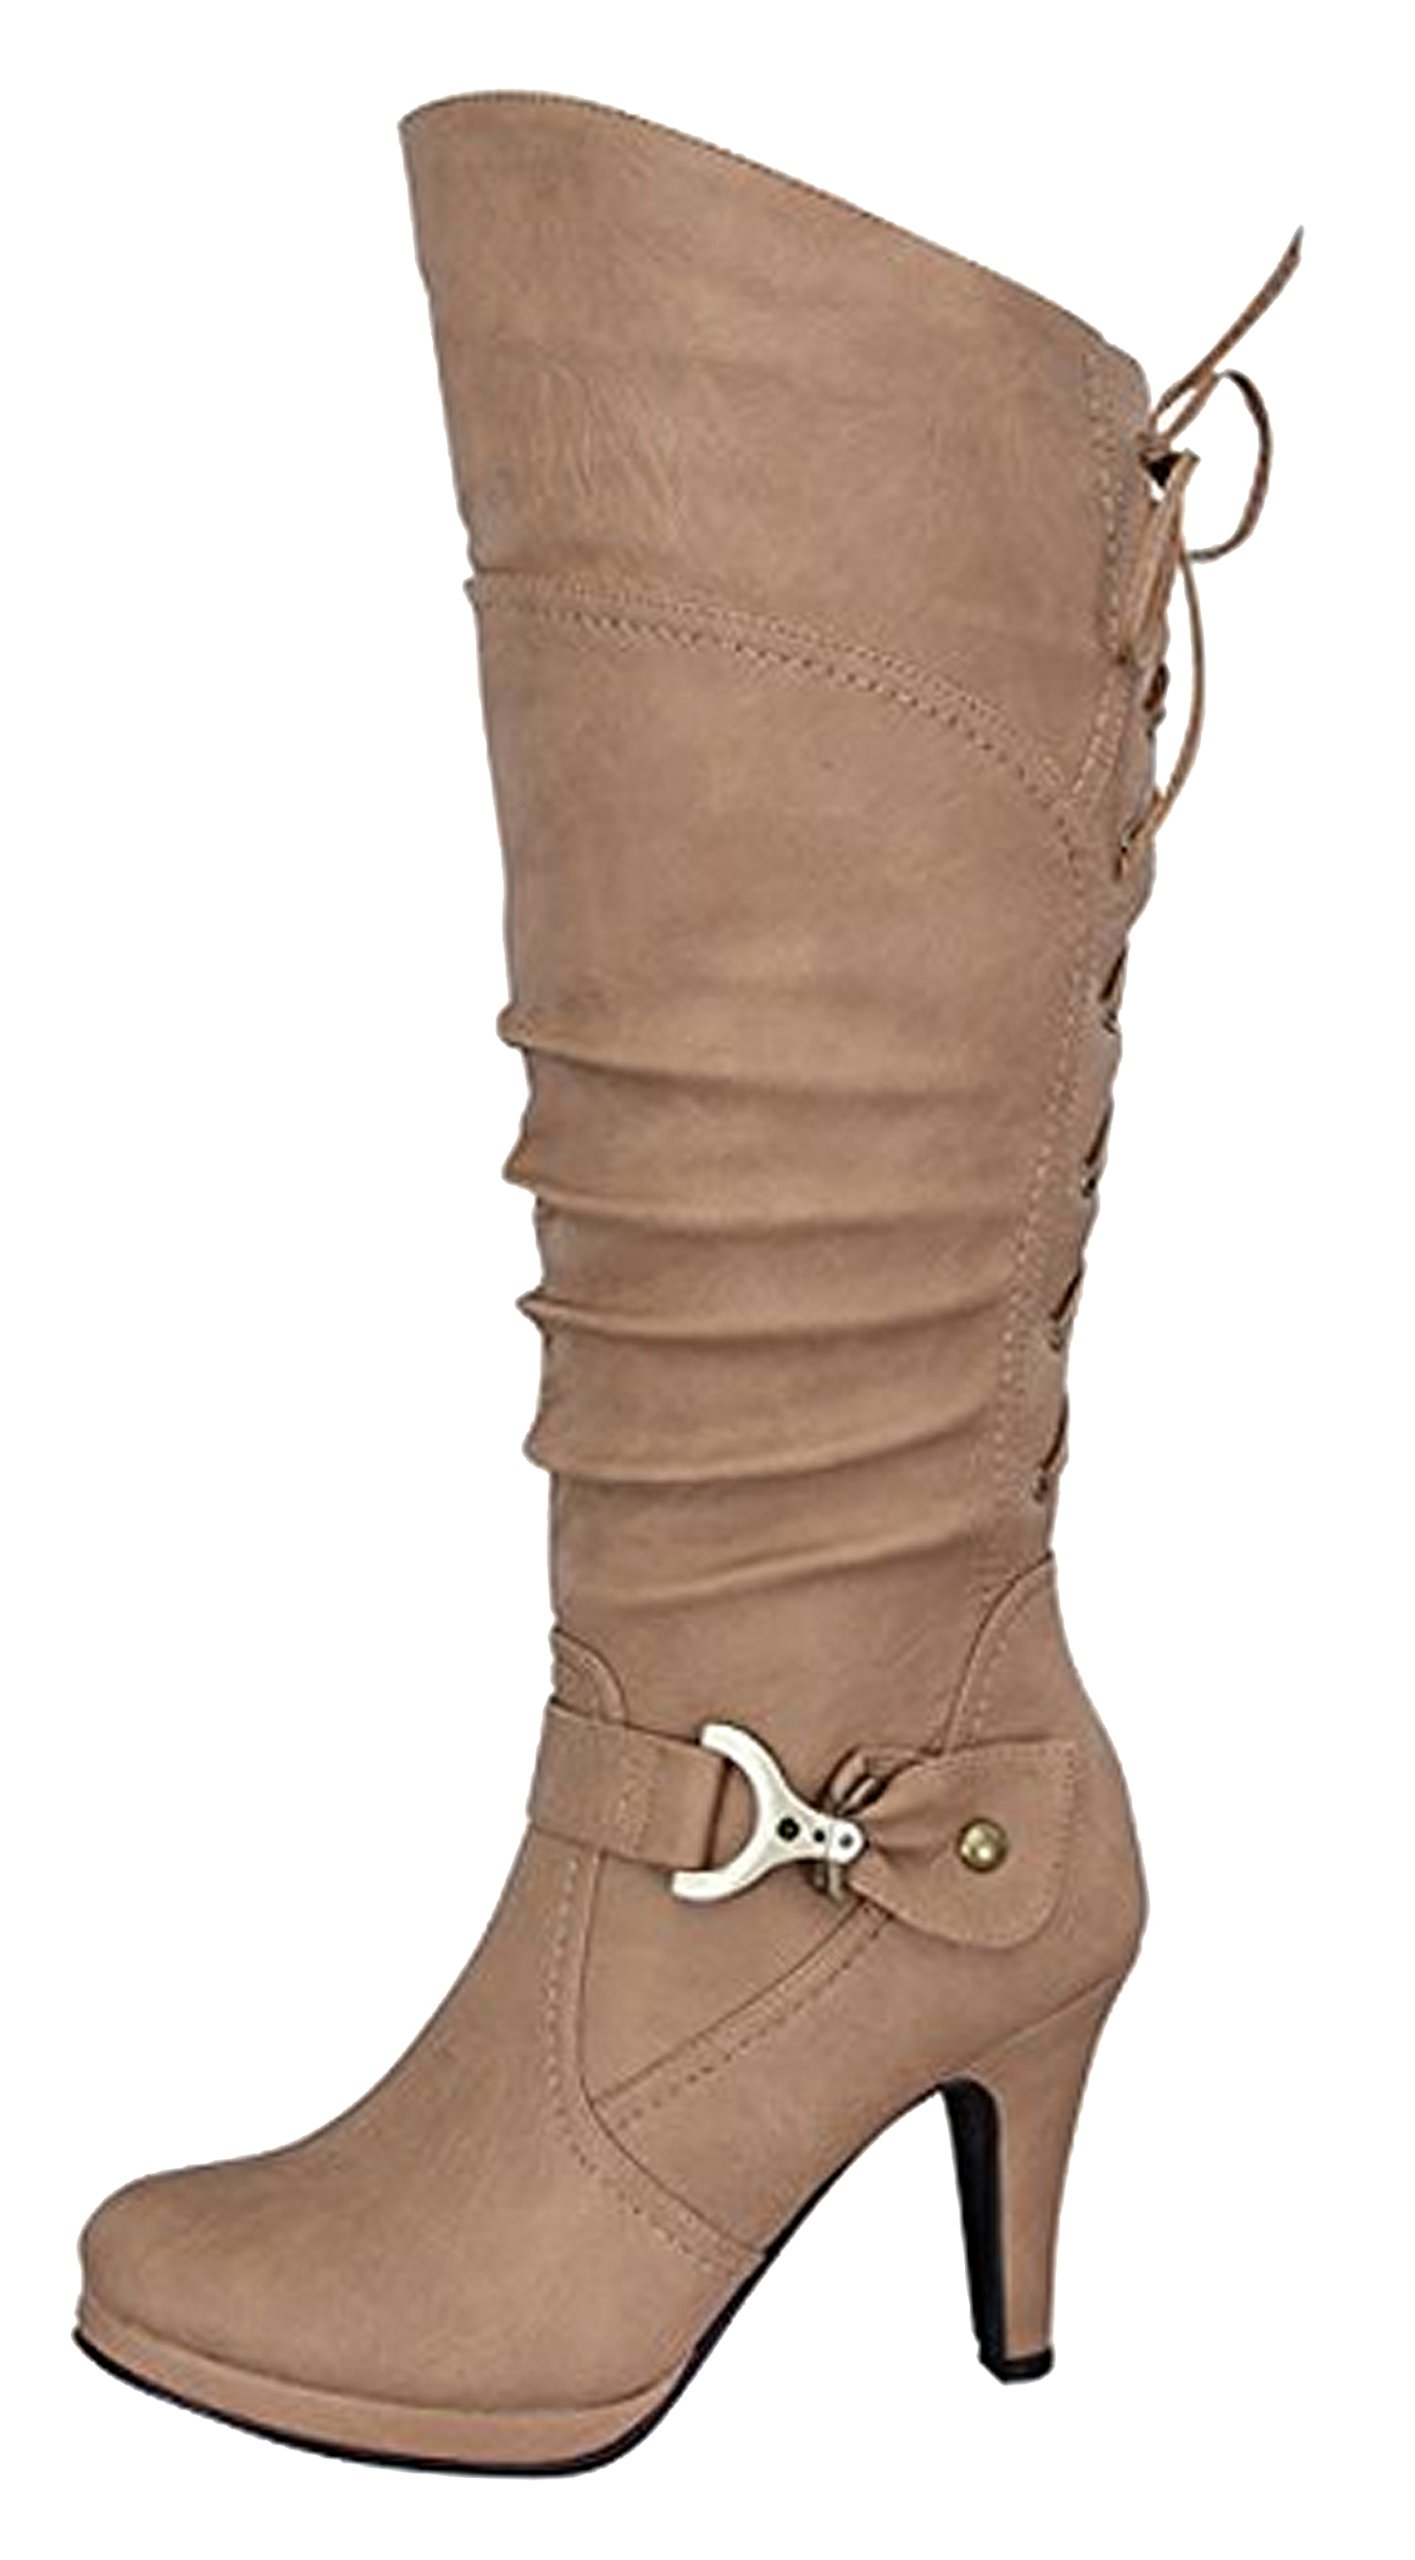 Top Moda Womens Page-65 Knee High Round Toe Lace-Up Slouched High Heel Boots,Taupe,8